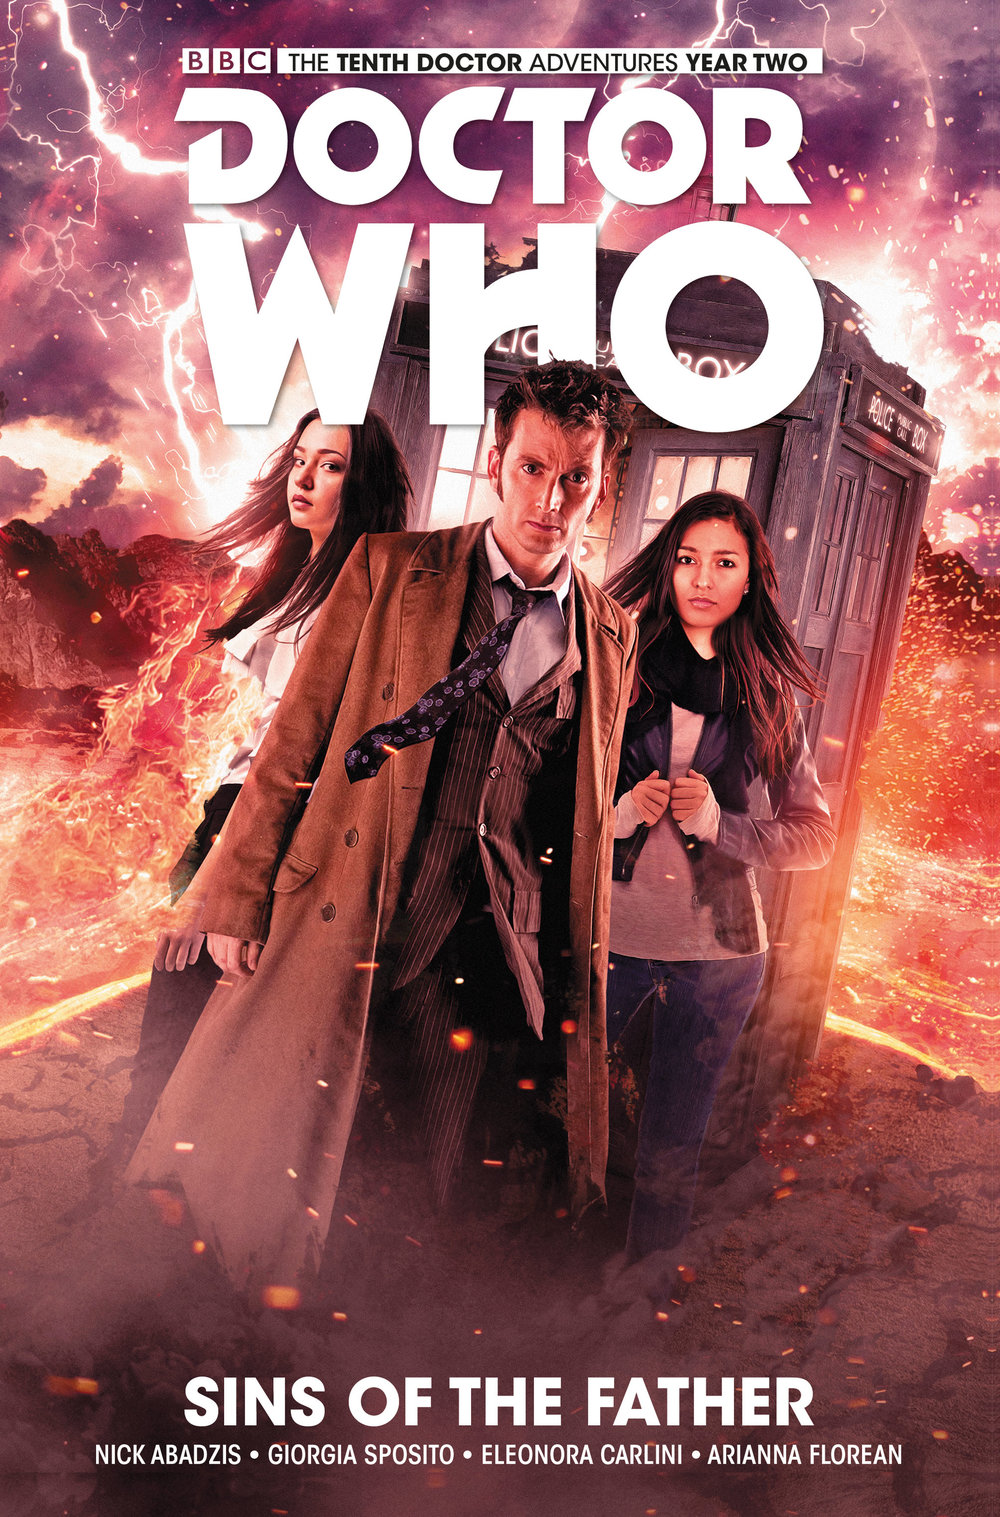 Doctor Who Volume 6 -  Sins of the Father